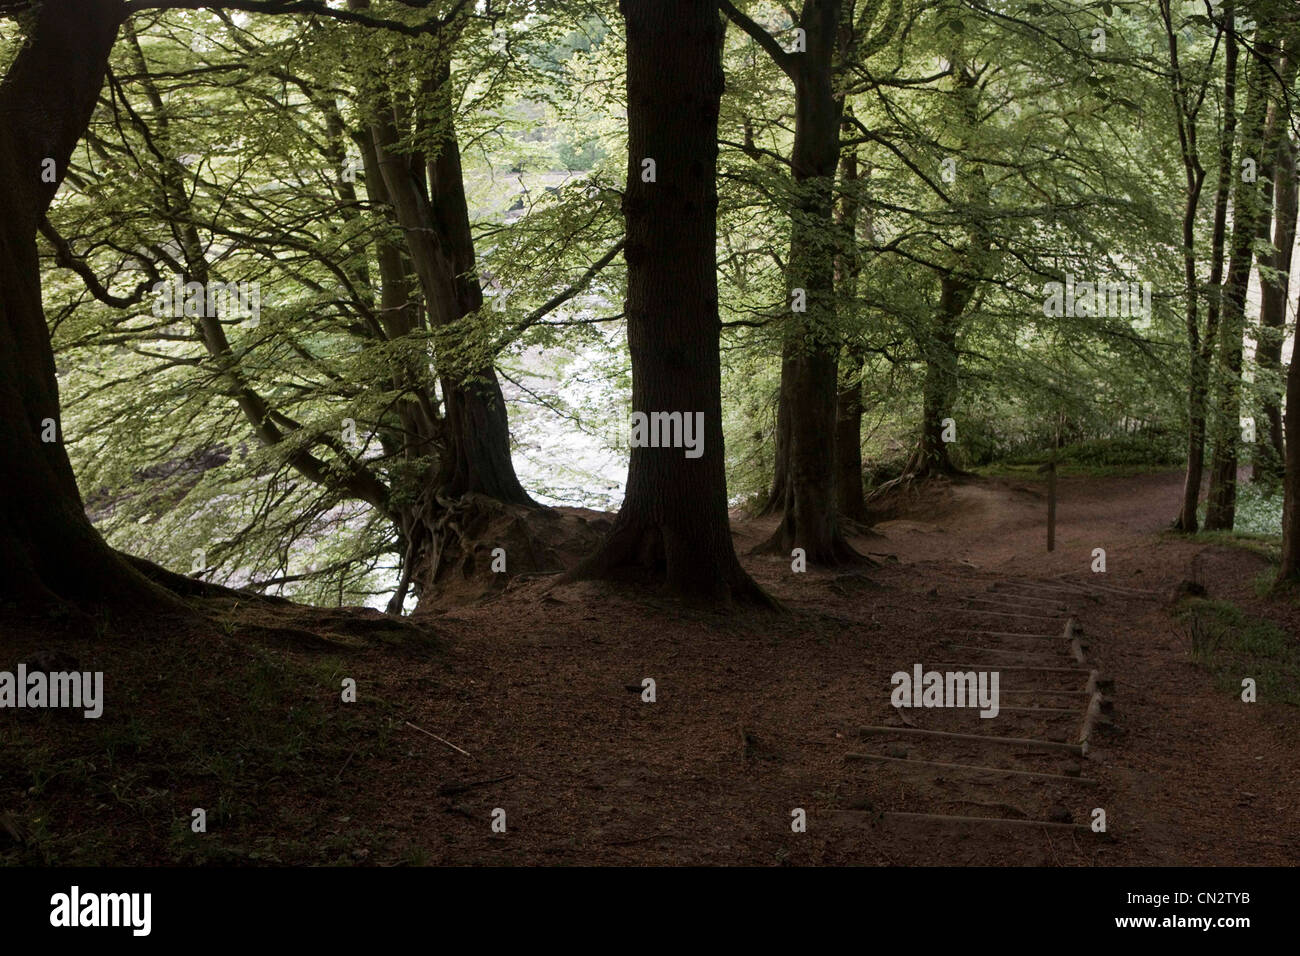 Forest scene - Stock Image